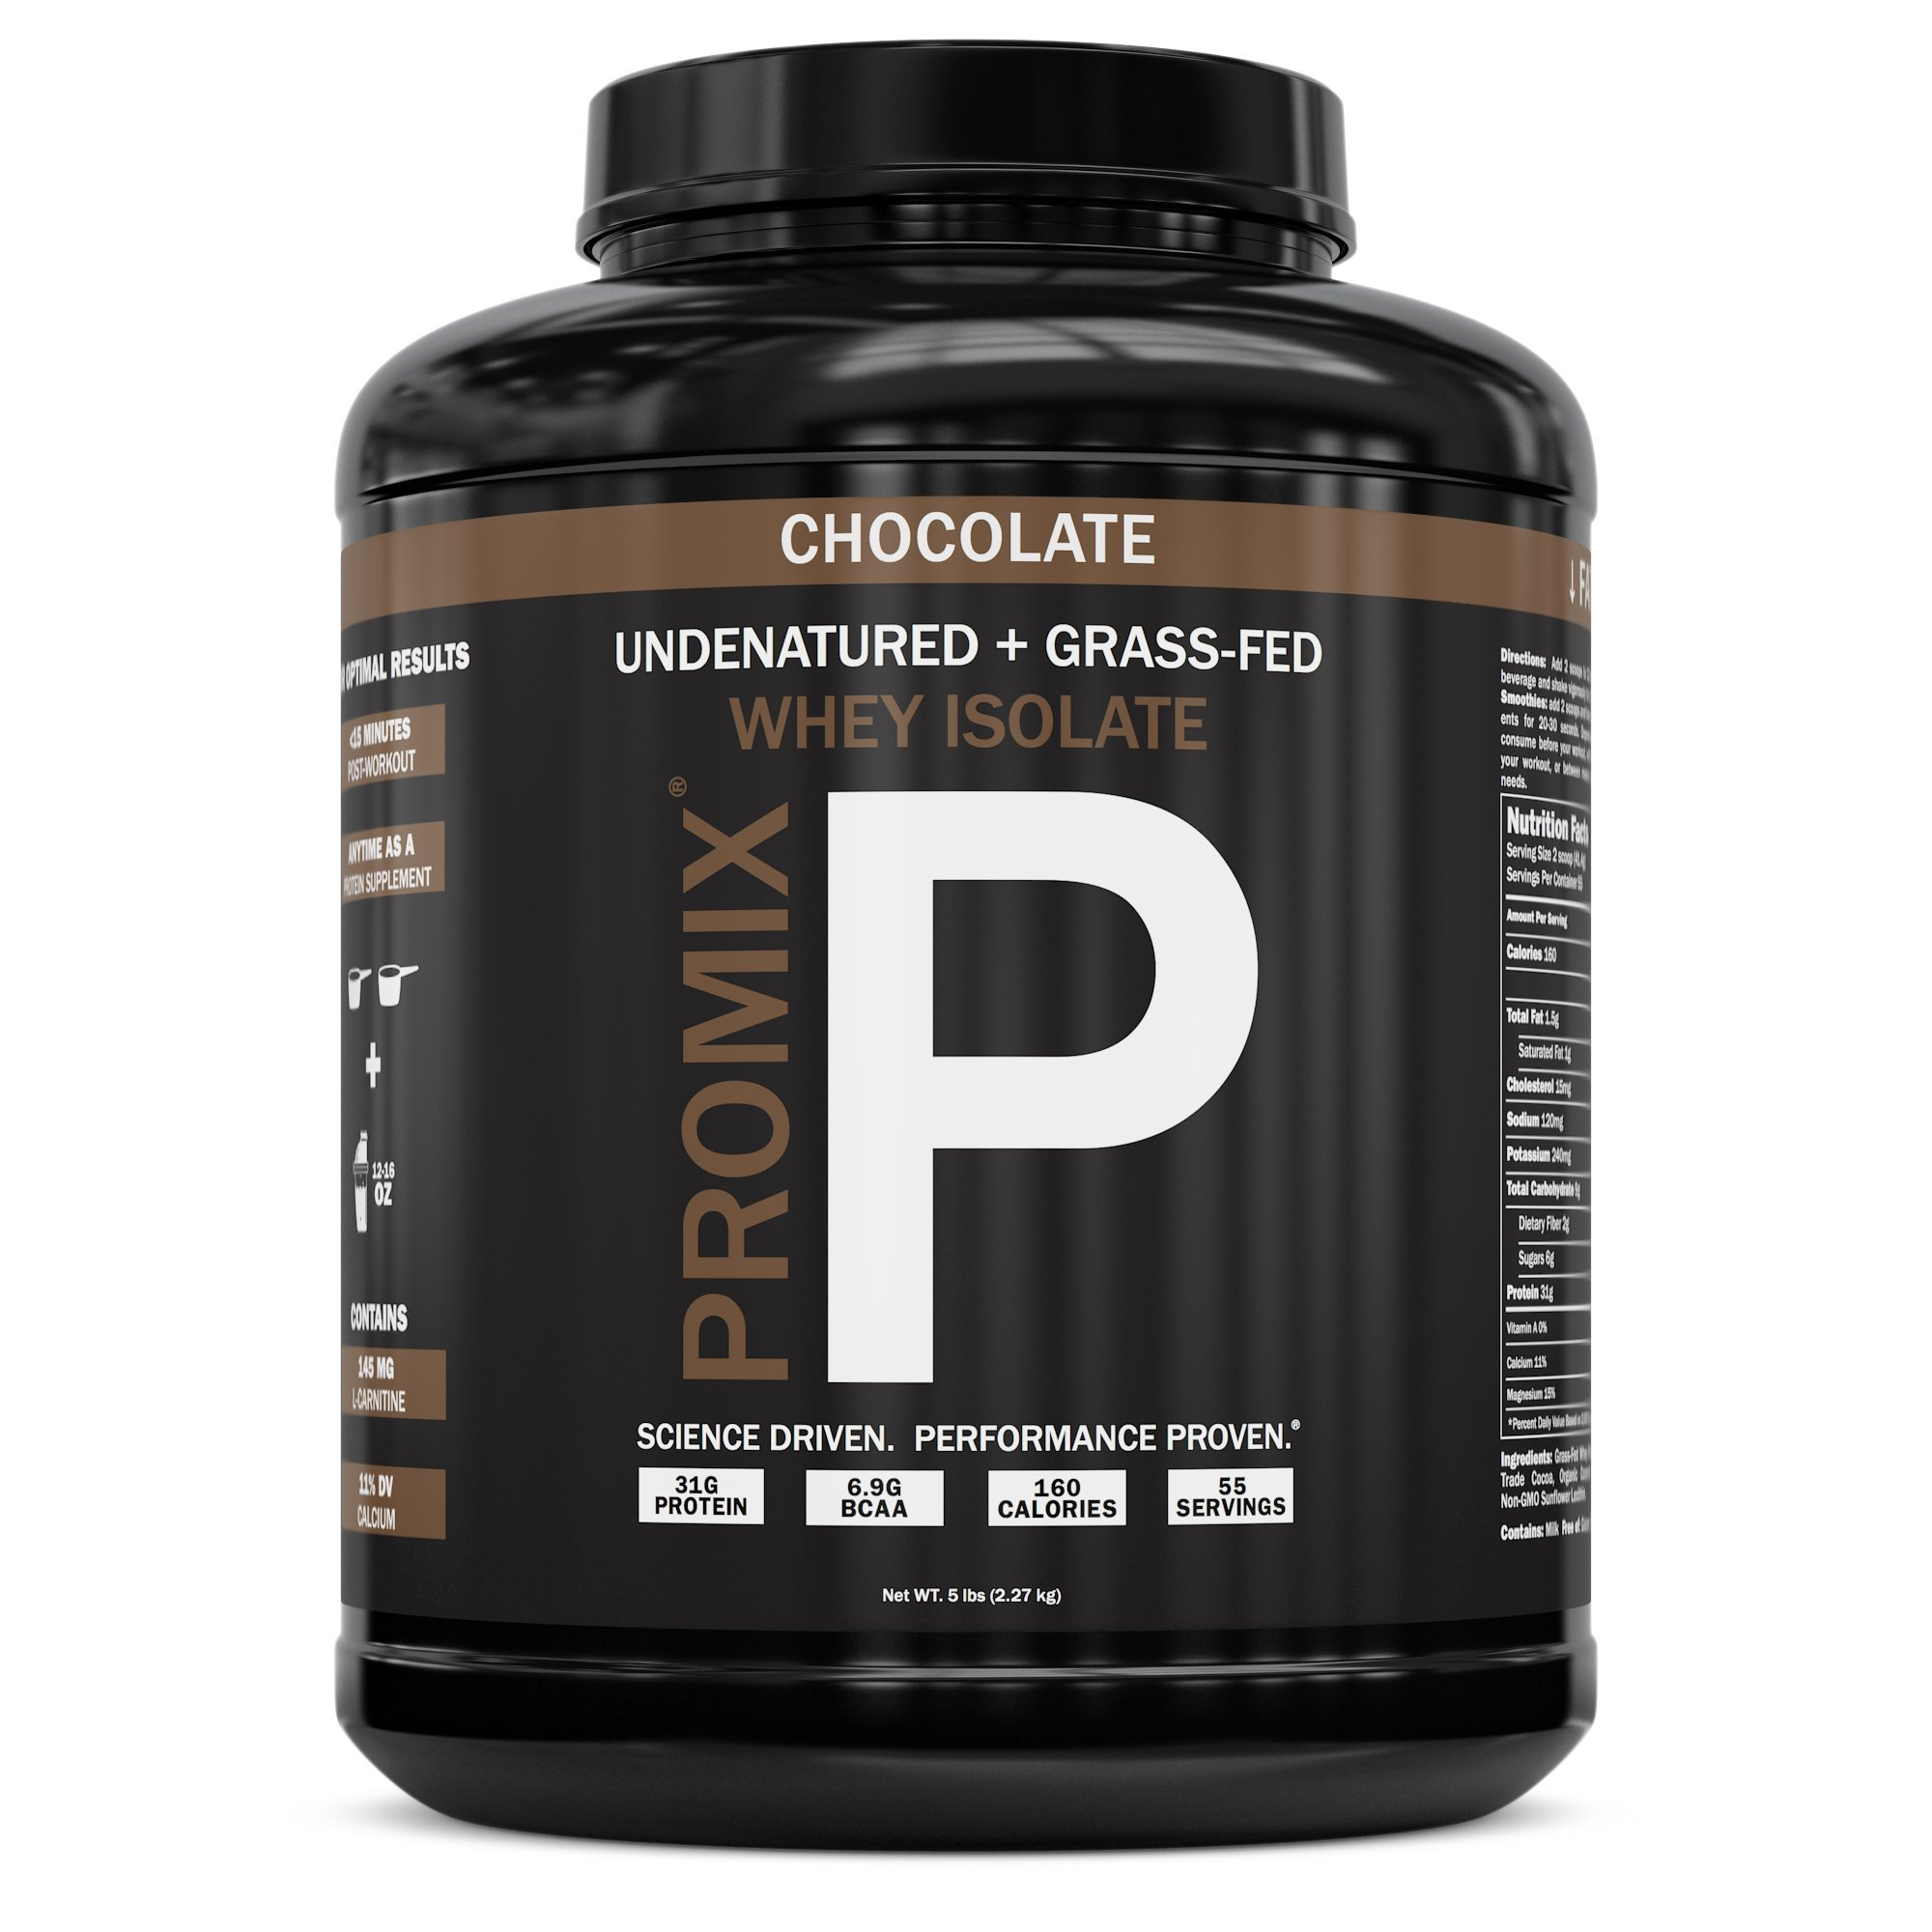 Native Grass Fed Whey Protein Isolate | 100% Optimum All Natural | Undenatured | Non-GMO + Gluten-Free + Soy-Free | ­Best for Fitness Nutrition Shakes | Energy Smoothie (Chocolate, 5LB) by ProMix Nutrition